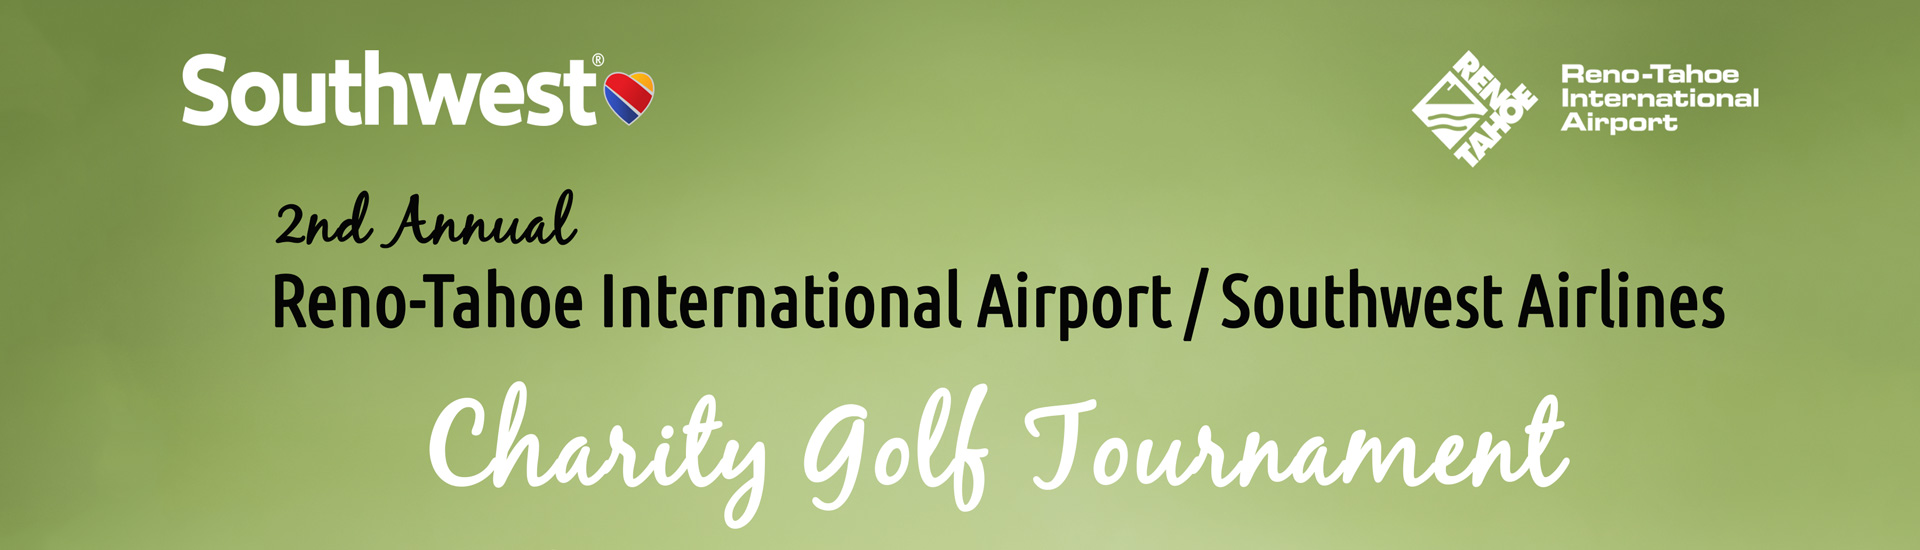 Charity Golf Tournament – August 17, 2019